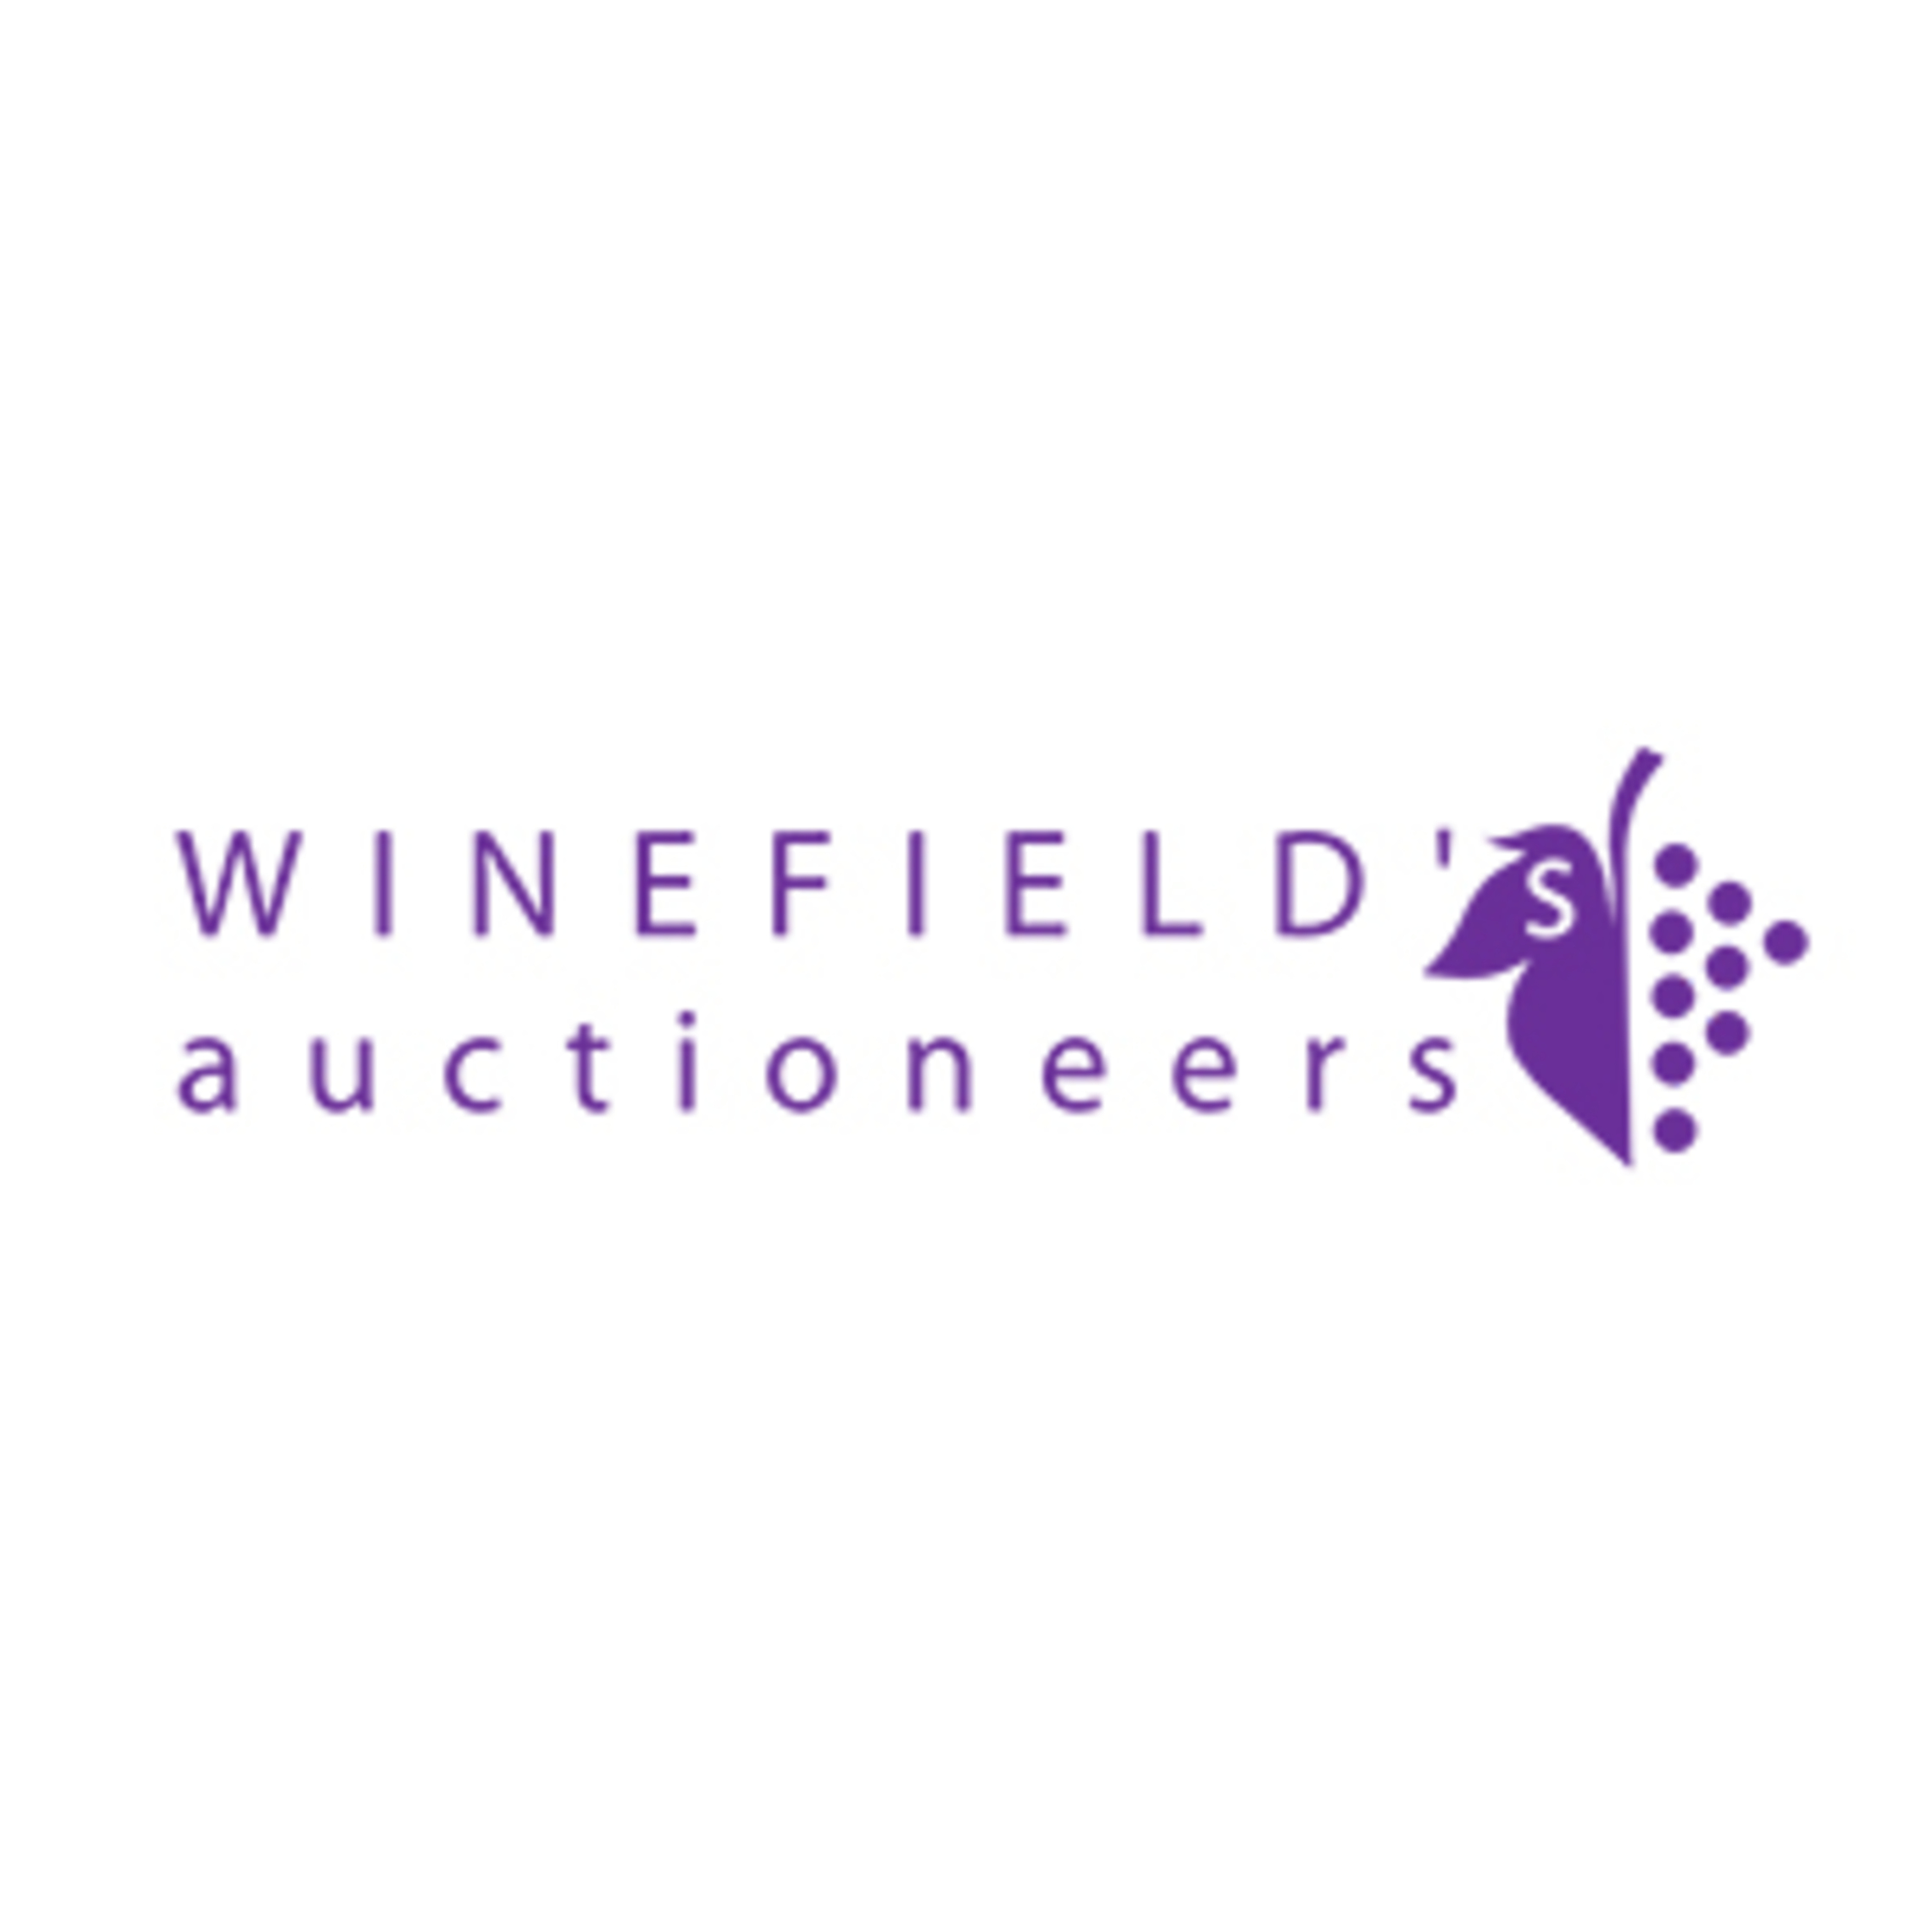 winefield auctioneers asia- company logo